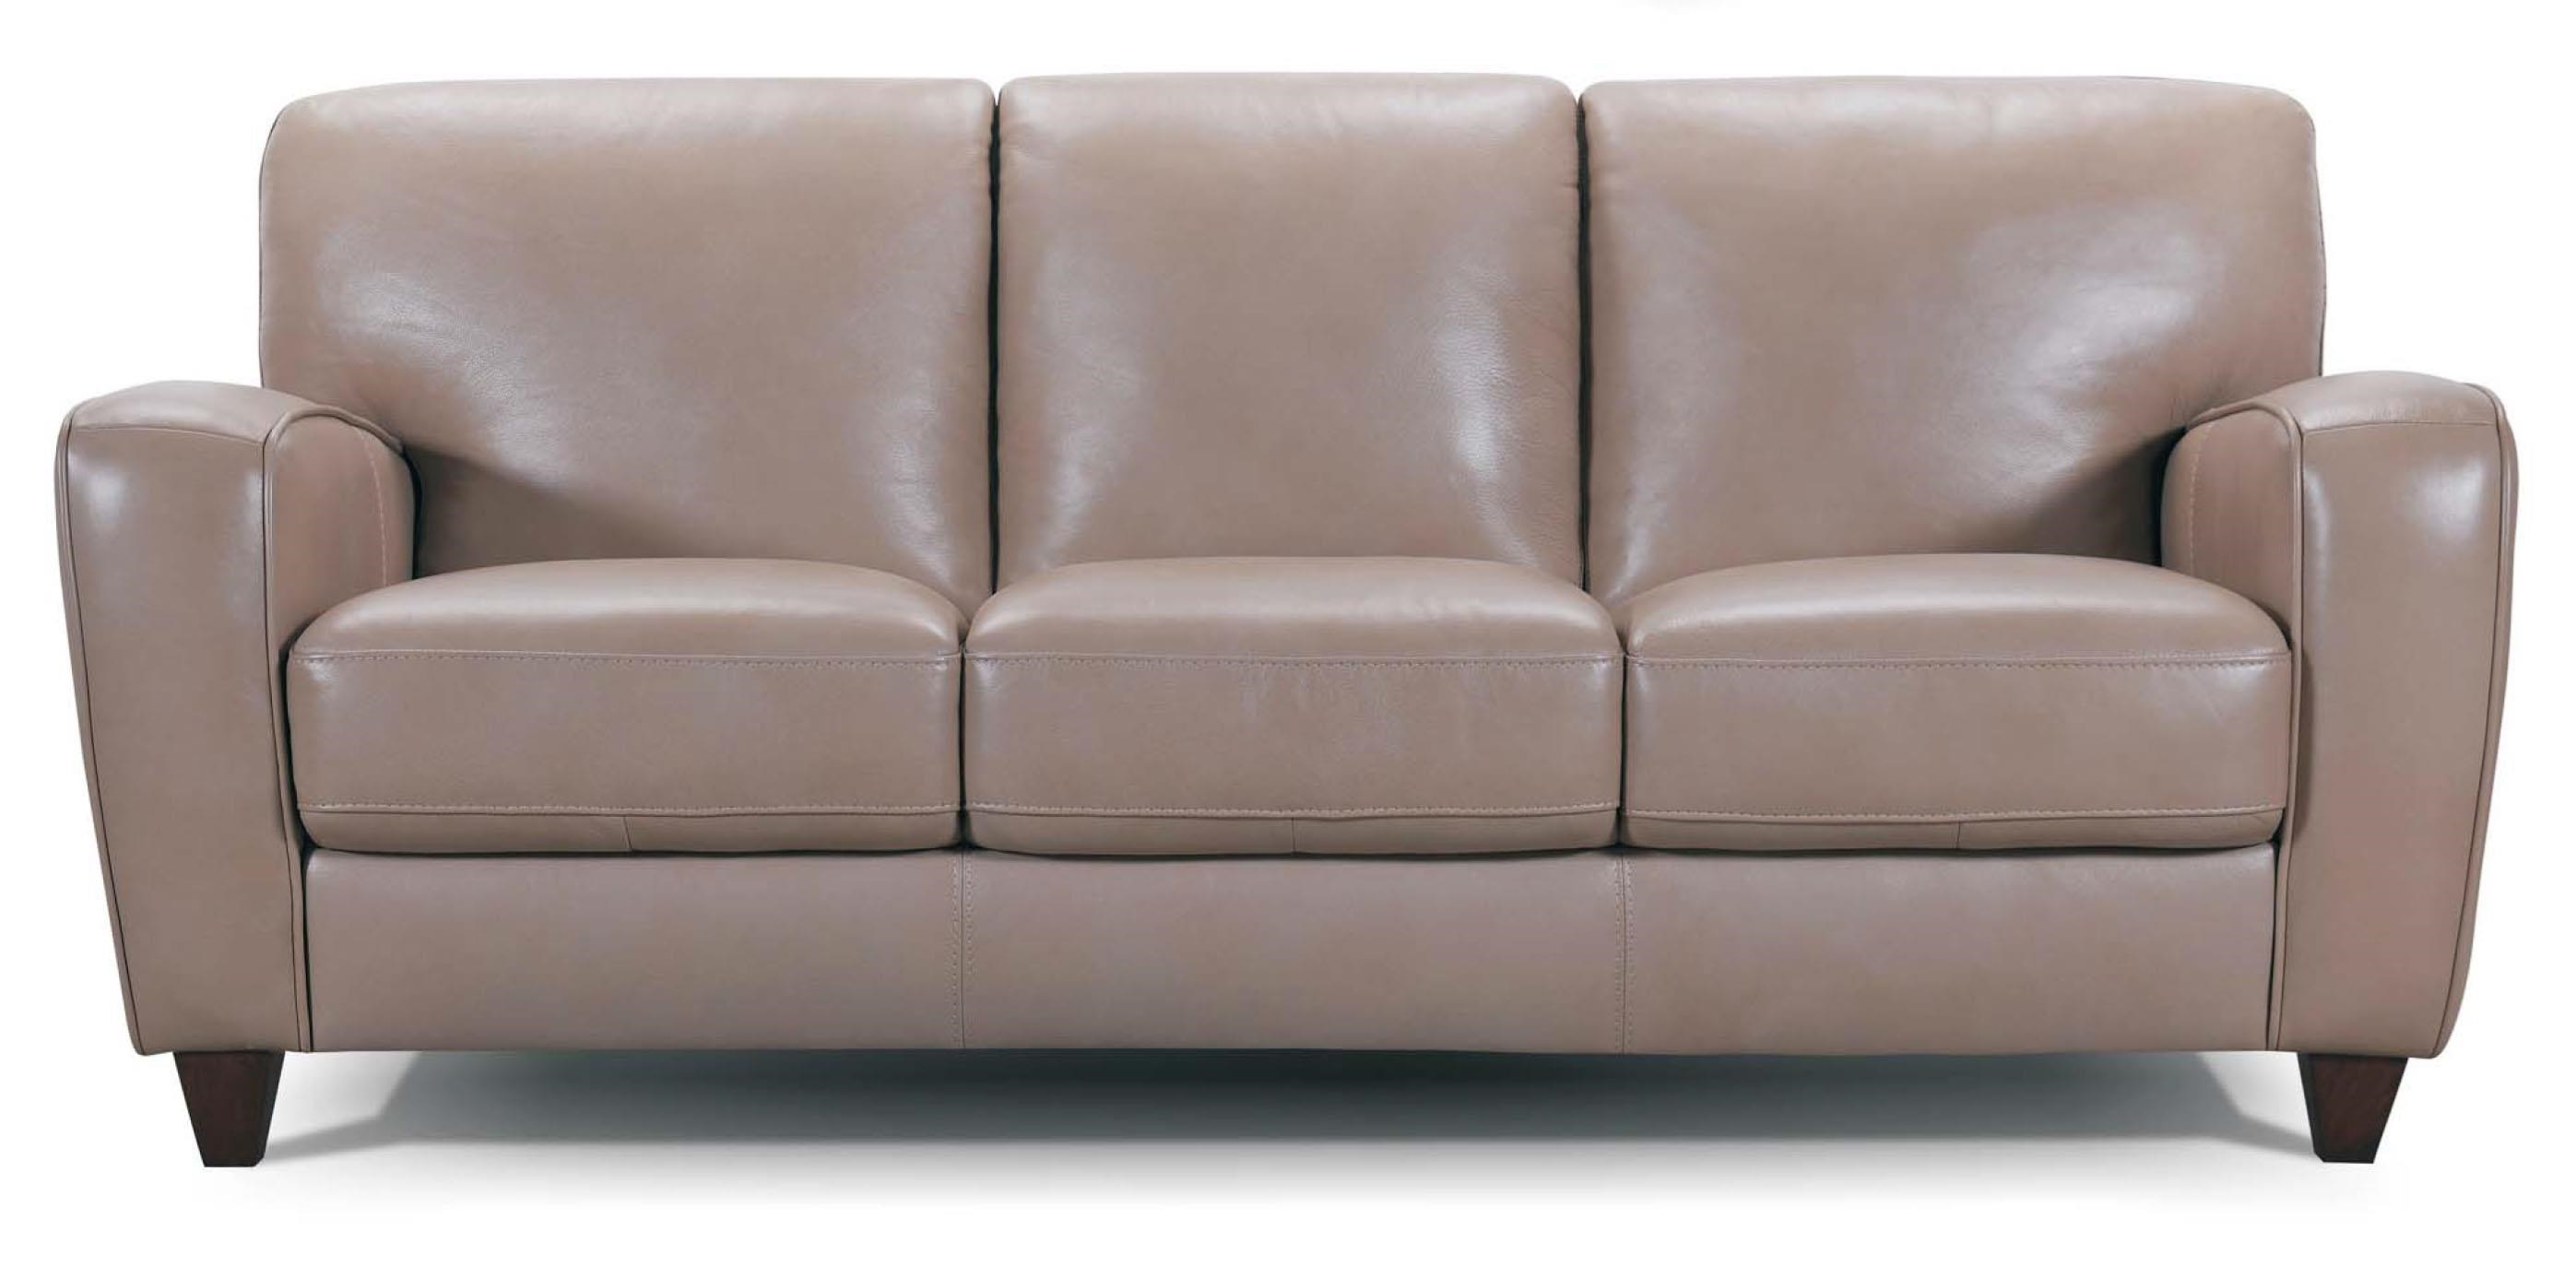 31398 Track Arm Leather Sofa by Violino at Dunk & Bright Furniture